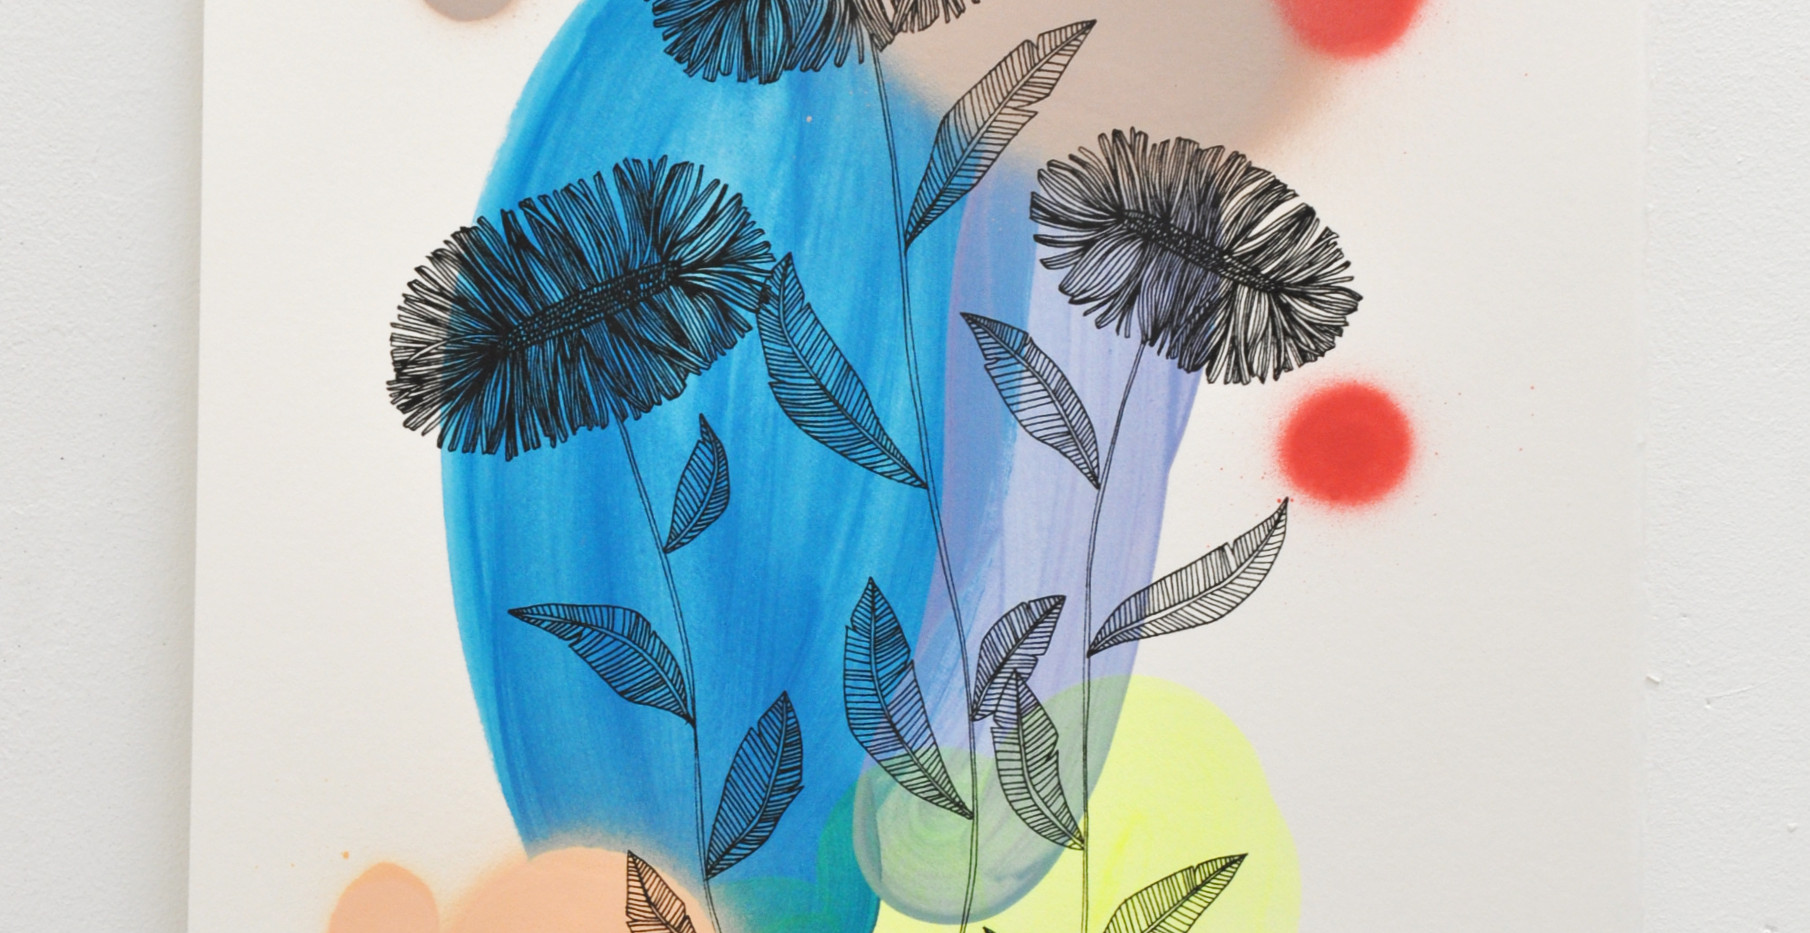 Daisies edition no. 9 of 30, silk screen print on hand painted background, 50 x 35cm